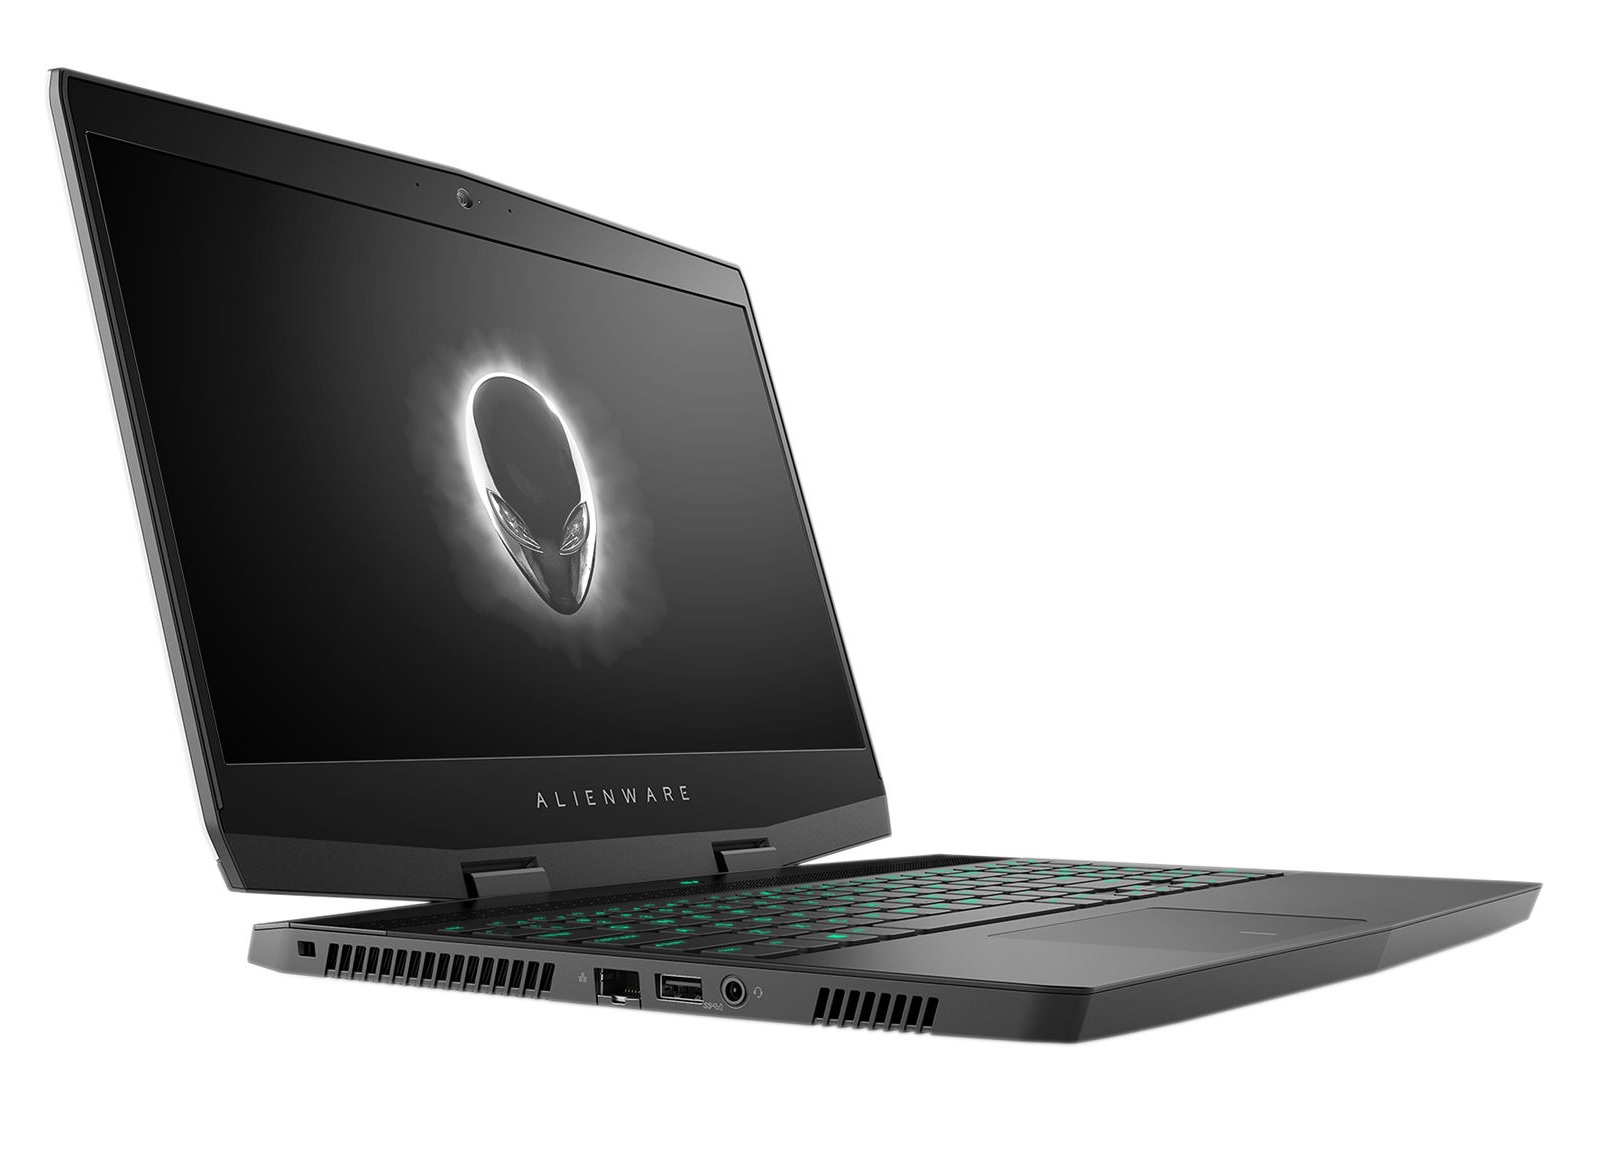 Dell Alienware M15 R3 15 inch Gaming Laptop